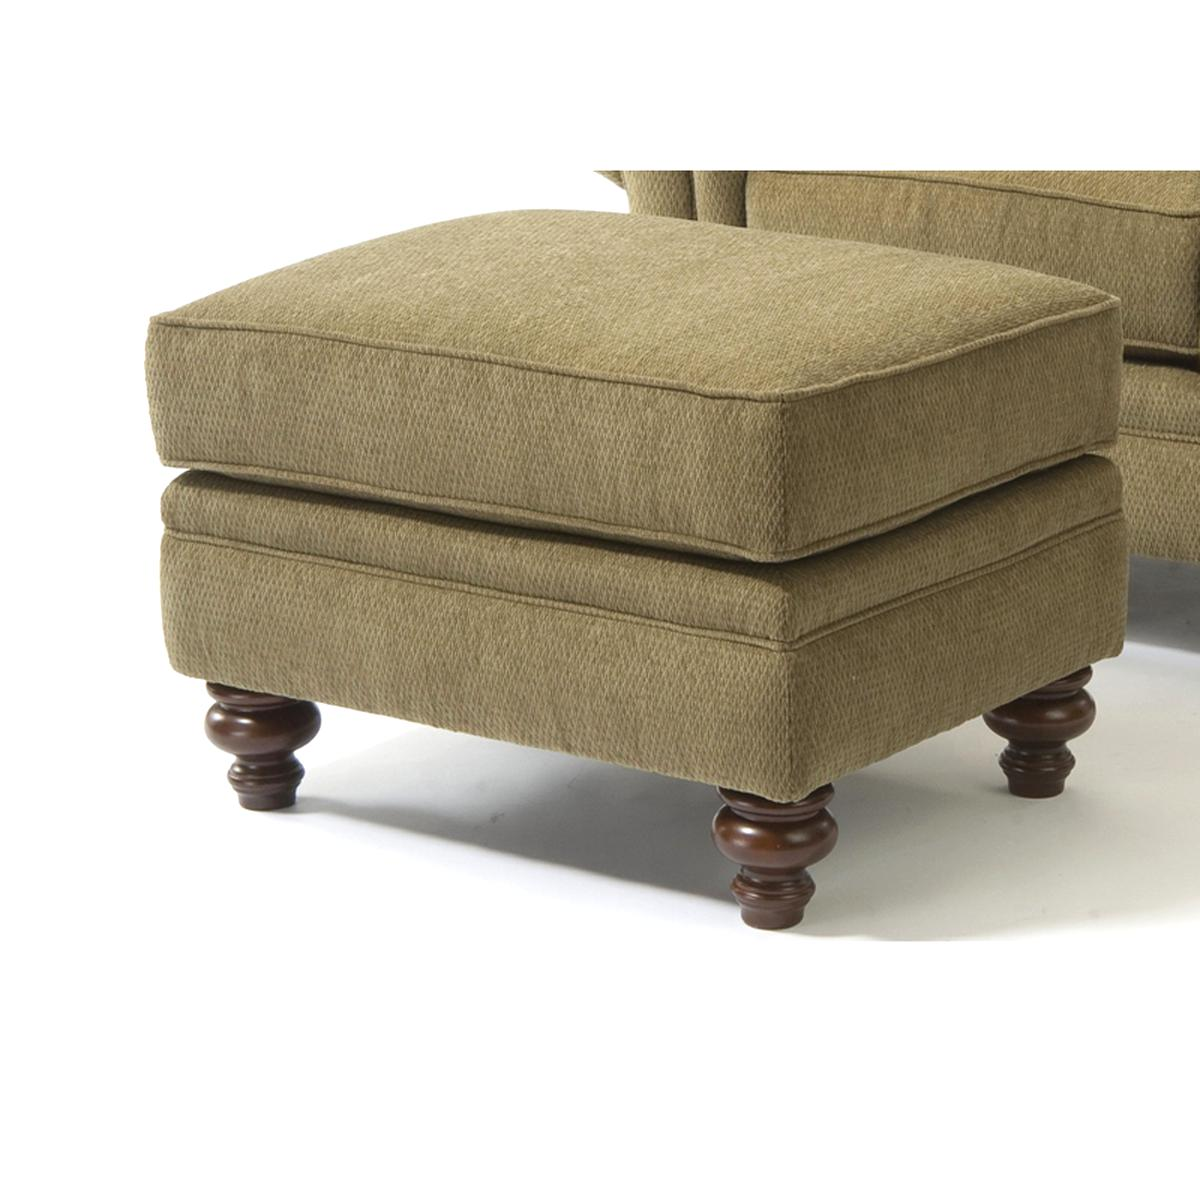 Outstanding Broyhill Ottoman For Sale Only 2 Left At 60 Pabps2019 Chair Design Images Pabps2019Com